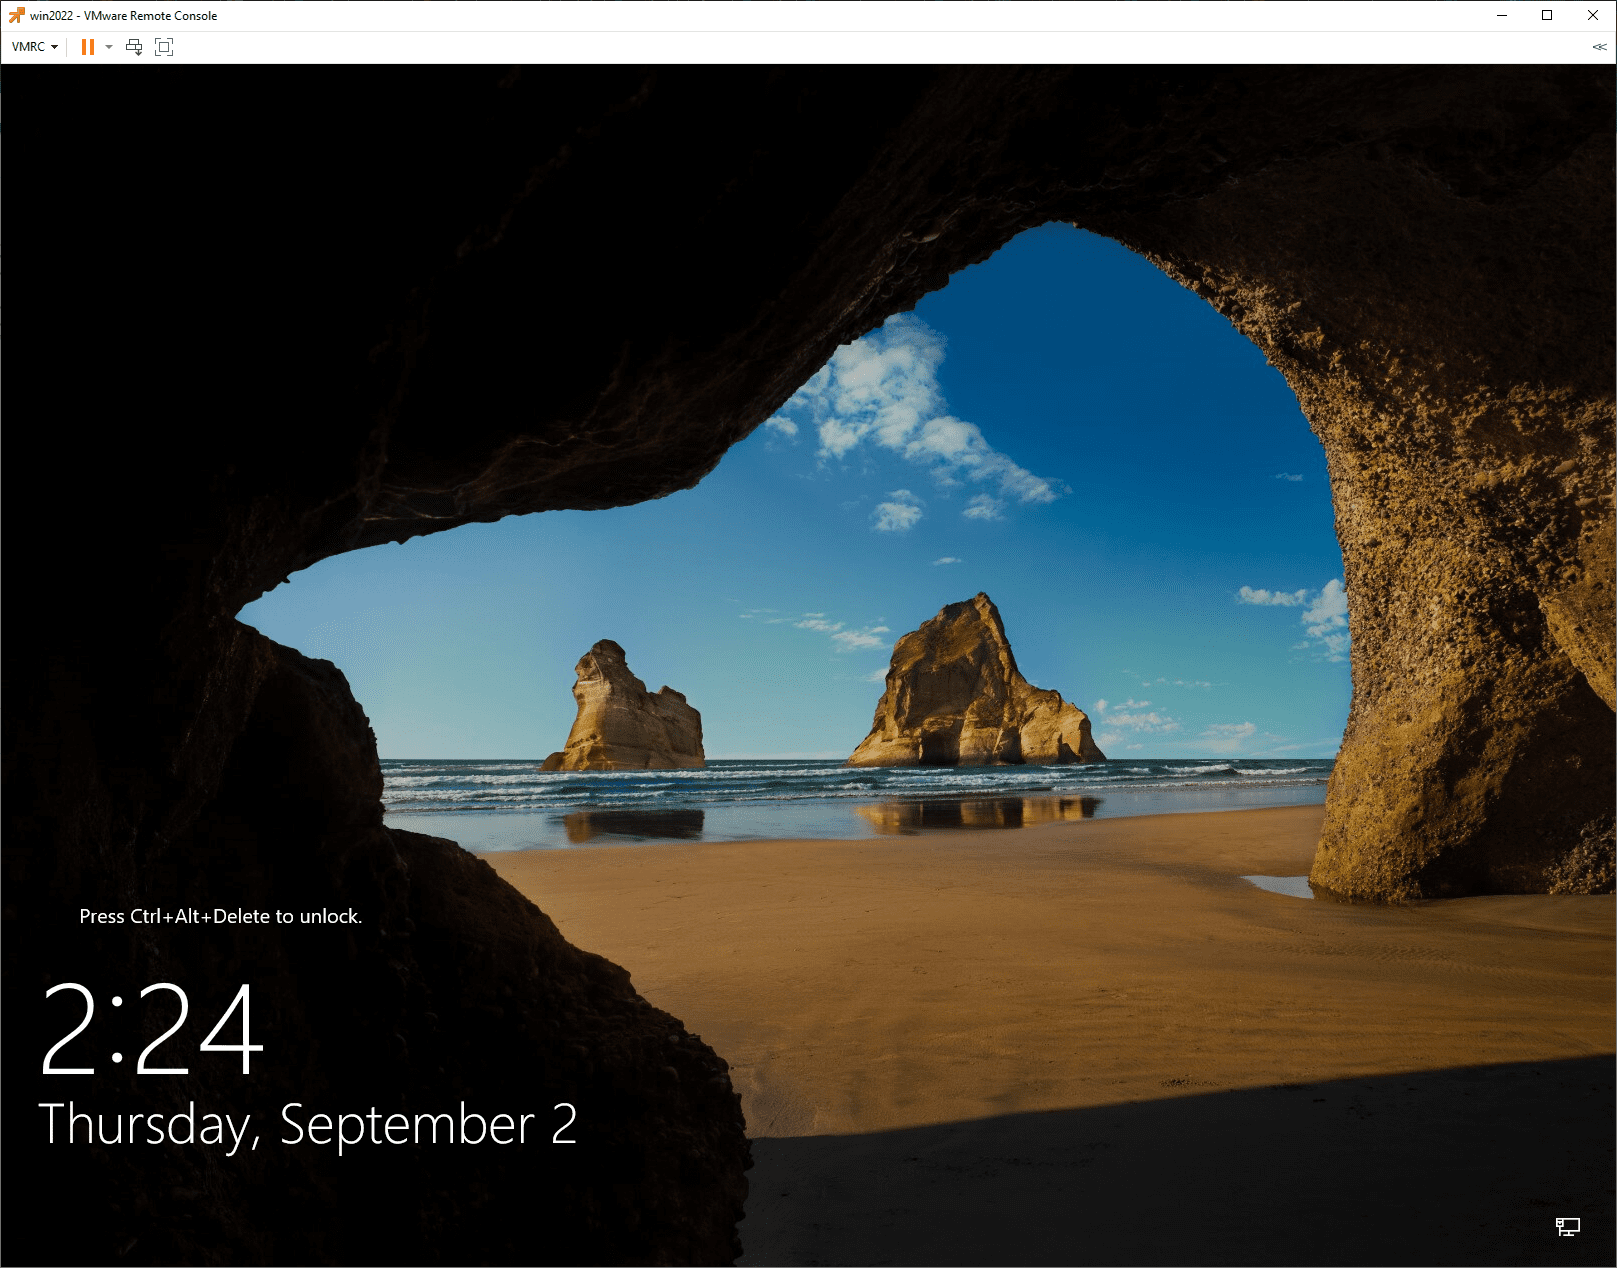 Windows Server 2022 GA installed using a Packer build and a cloned vSphere template